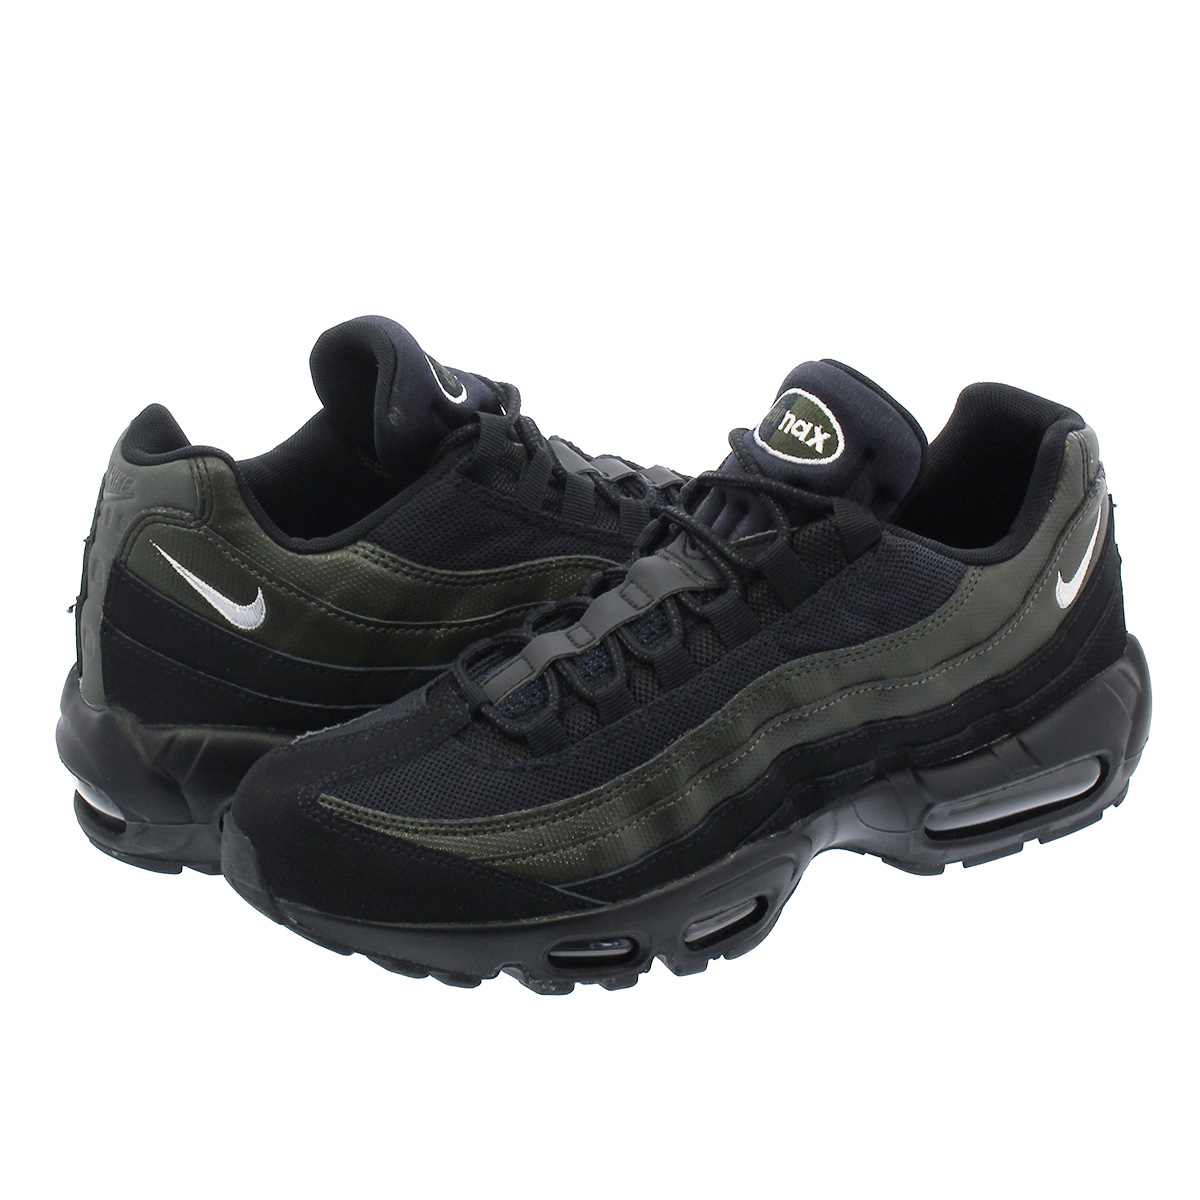 NIKE AIR MAX 95 ESSENTIAL Kie Ney AMAX 95 essential BLACK WHITE SEQUOIA  749 23c8c7fed